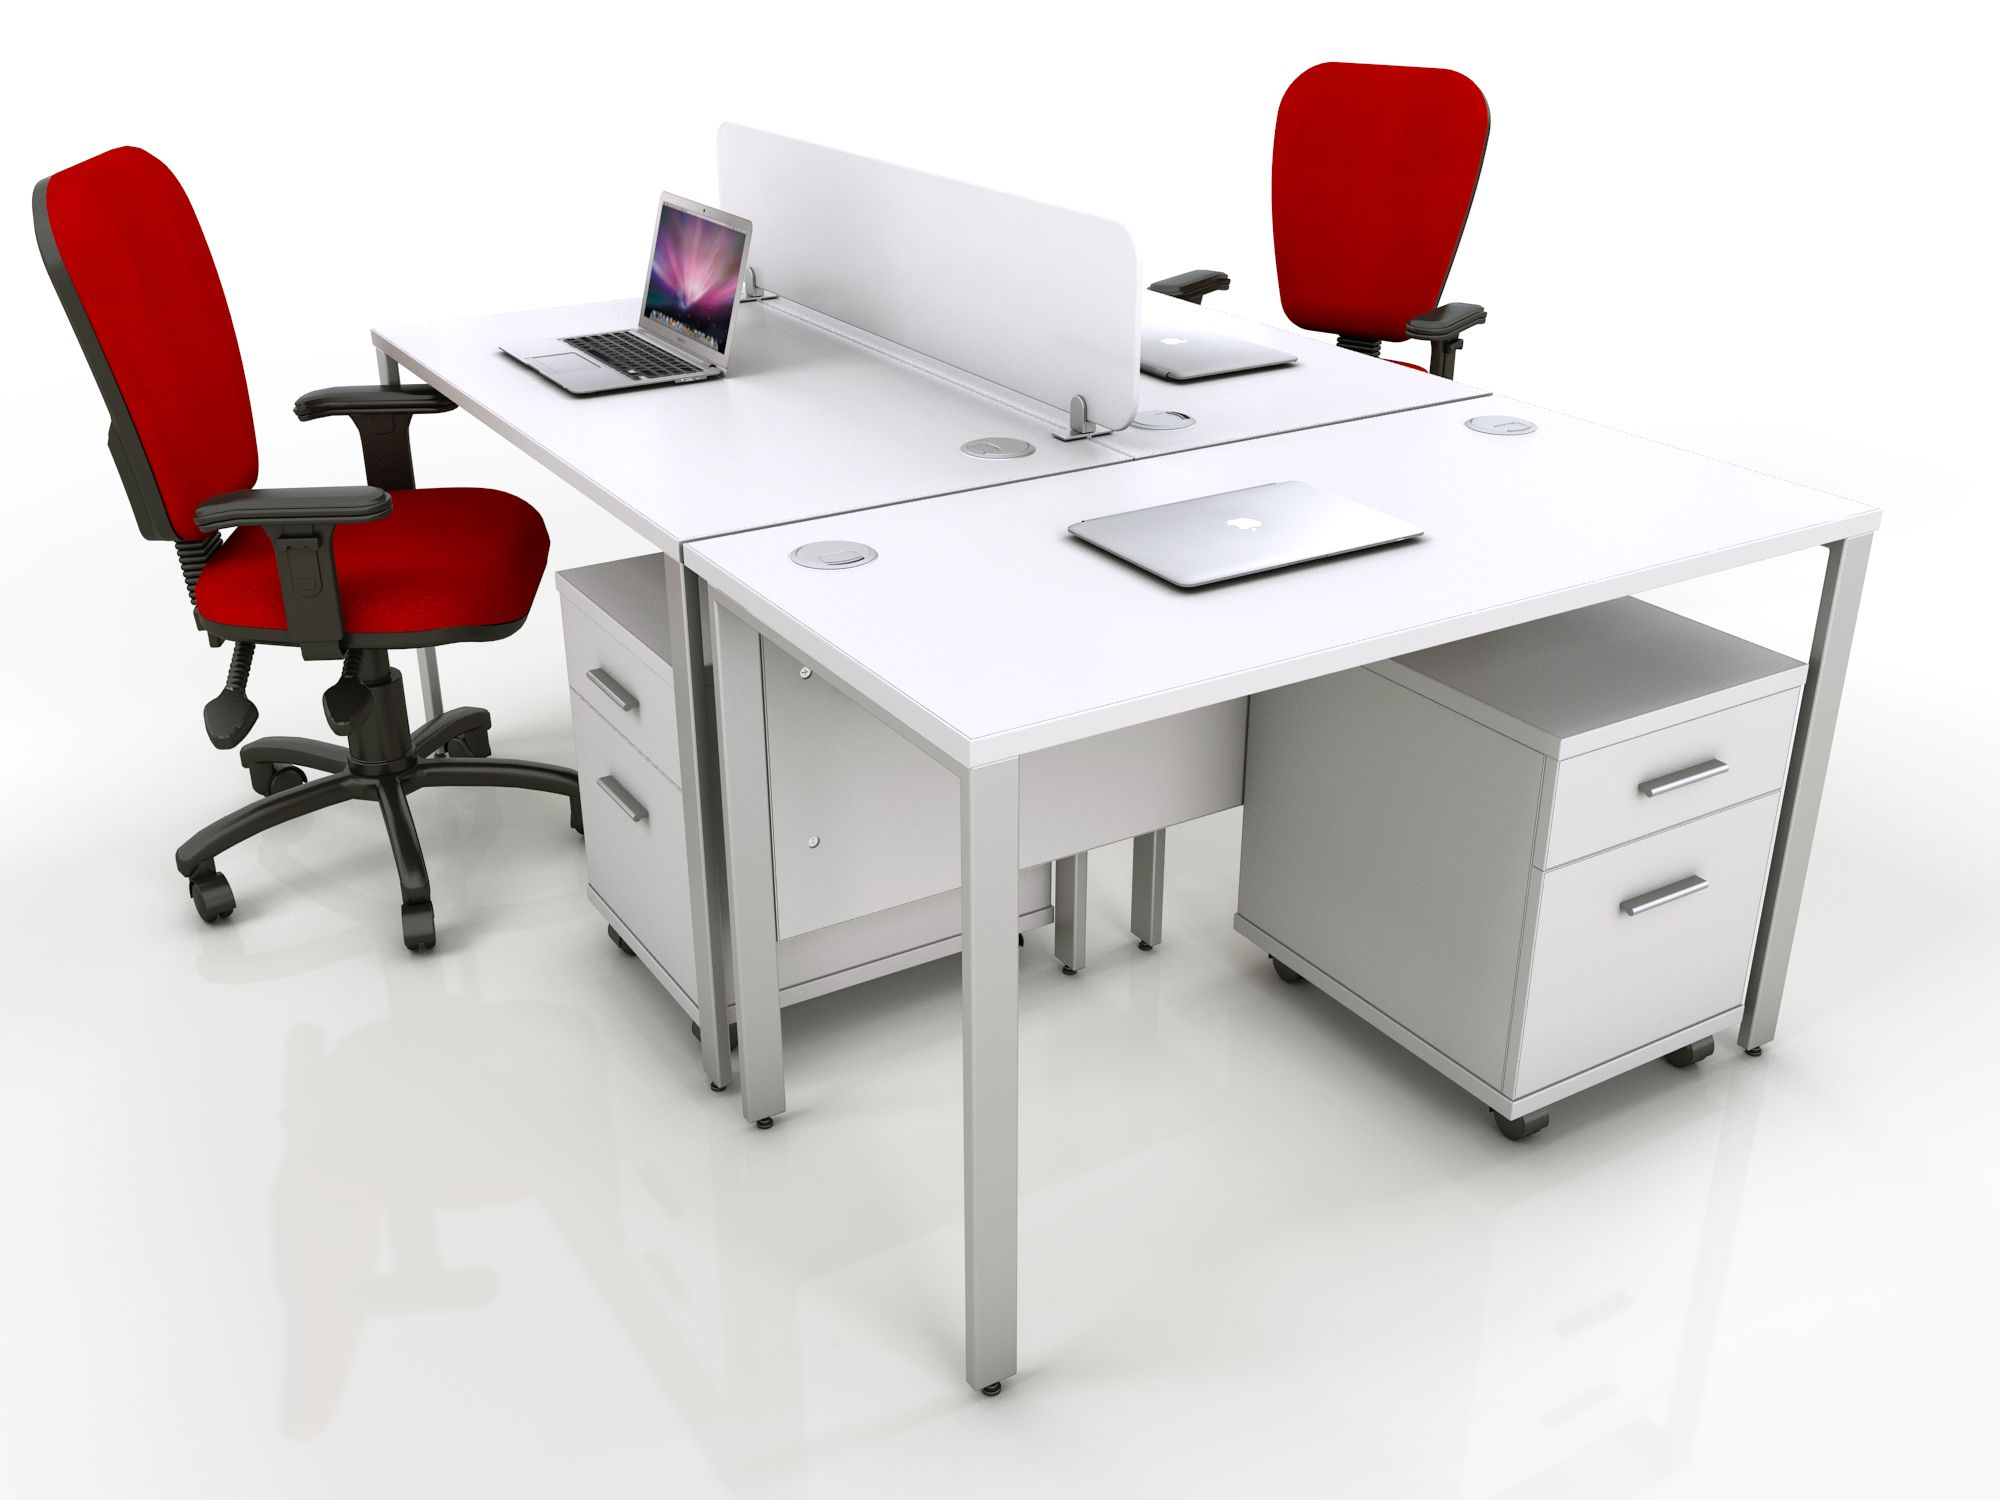 UK wholesale office furniture suppliers for dealers & resellers.